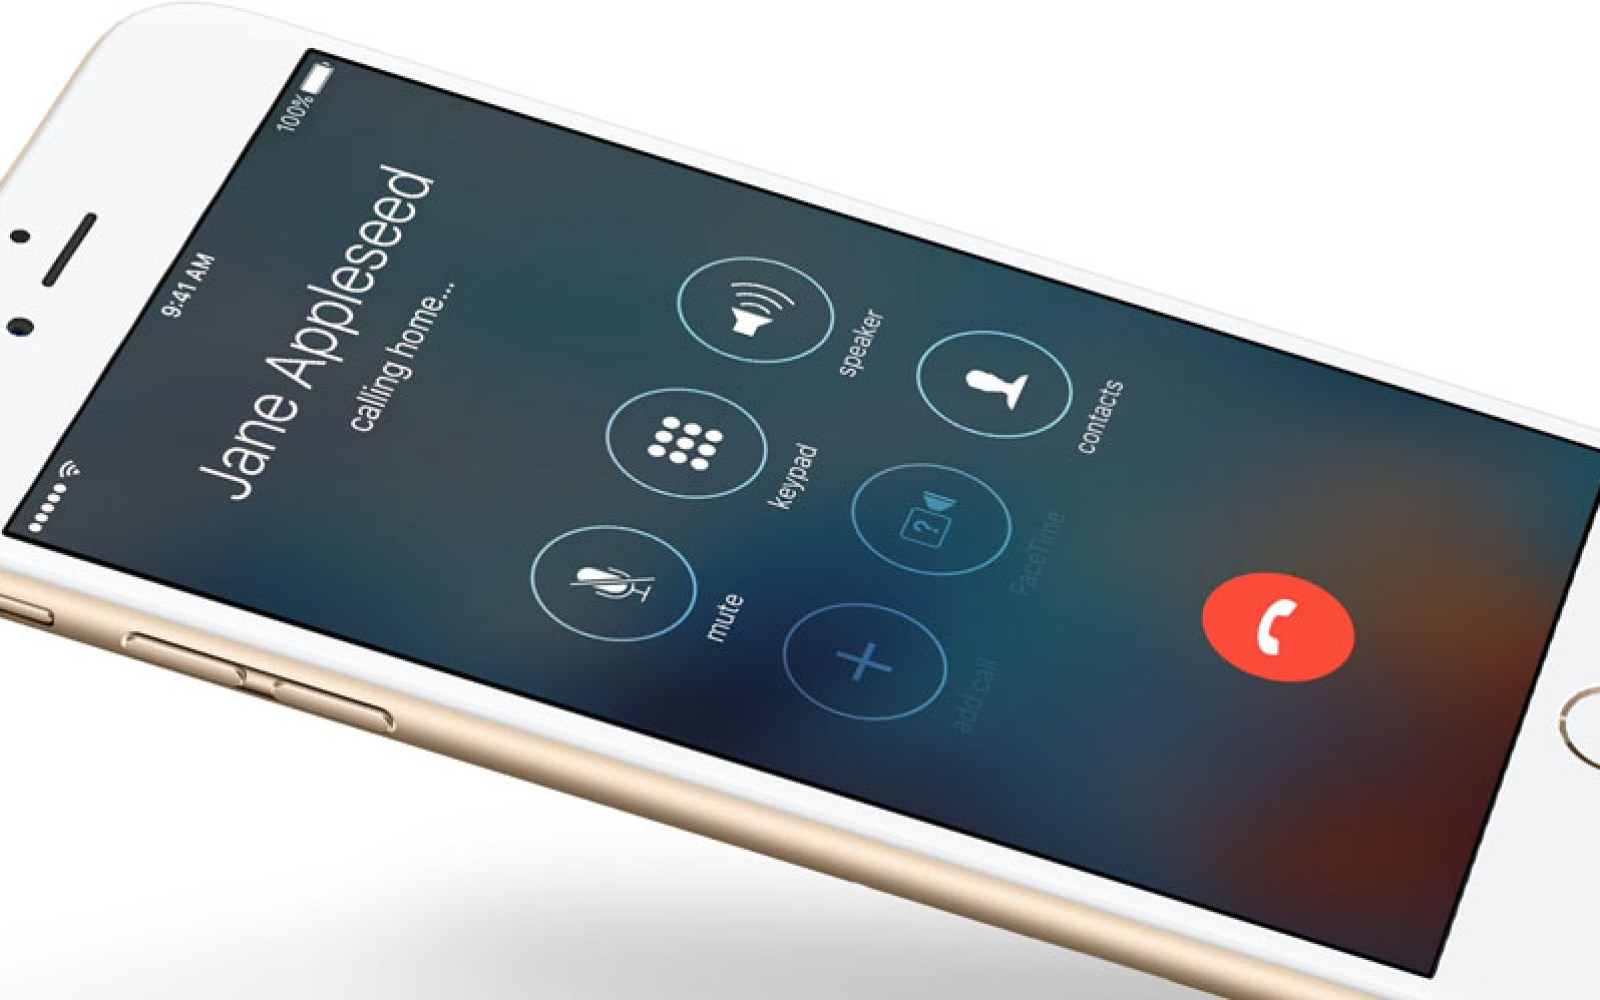 Apple hit with dumbest patent troll claims yet: 'iPhone makes phone calls & sends emails'